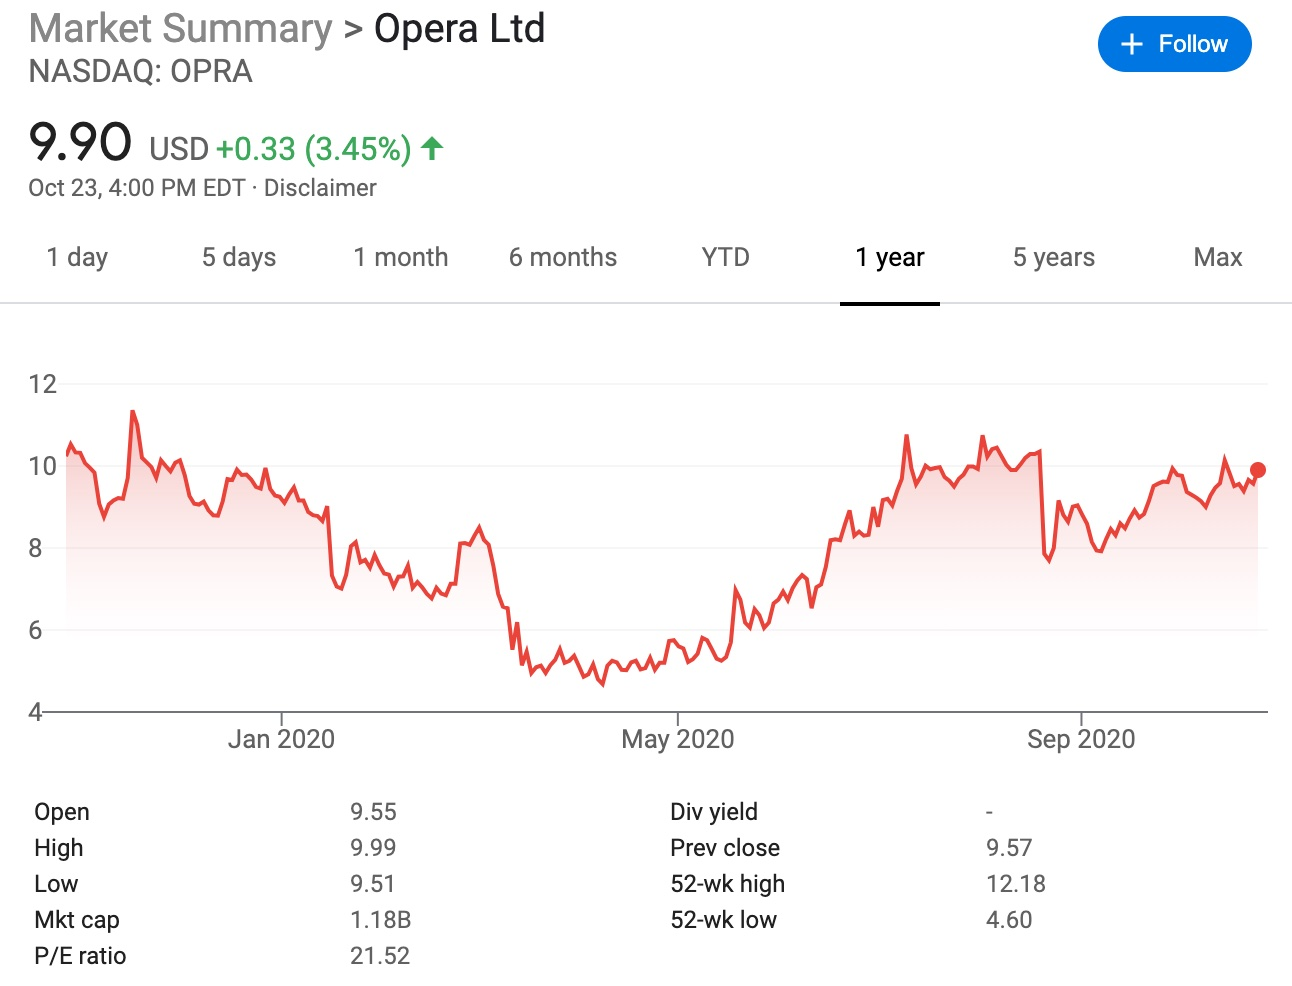 Chinese company increases its stake in Opera by 8.47% to become controlling shareholder-CnTechPost